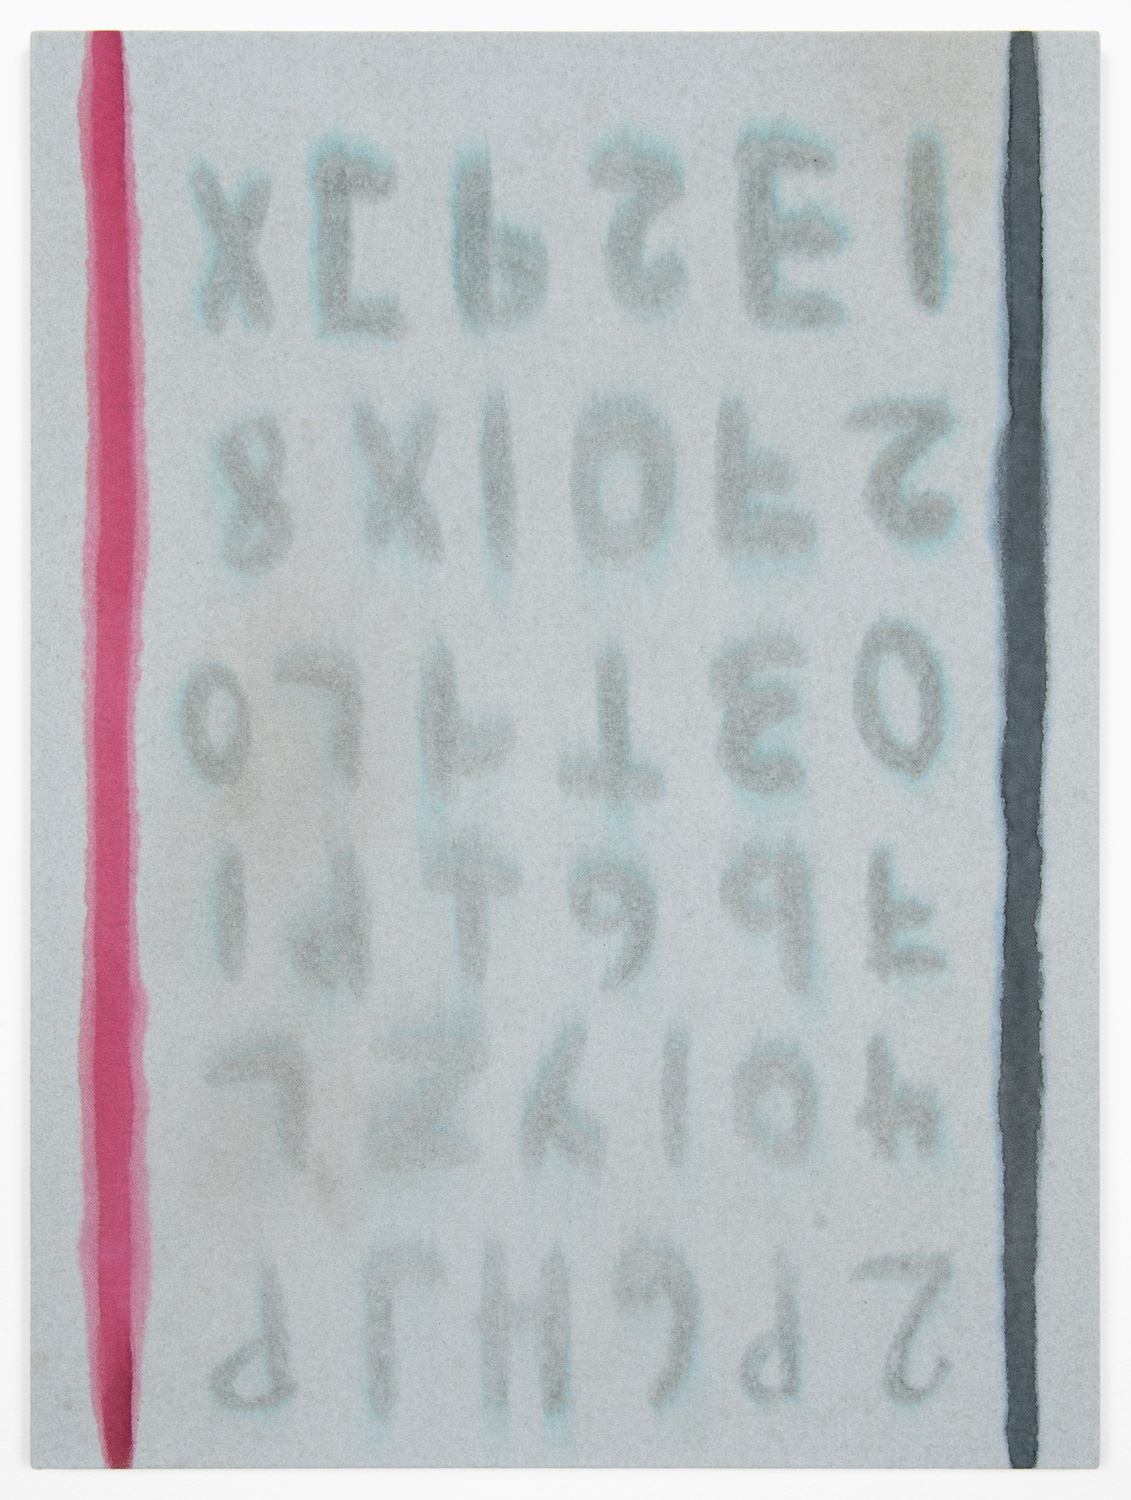 Amanda Ross-Ho  Untitled Painting (VOTE FOR VOTE)  2013 Acrylic on dyed canvas 24h x 18w in ARH053